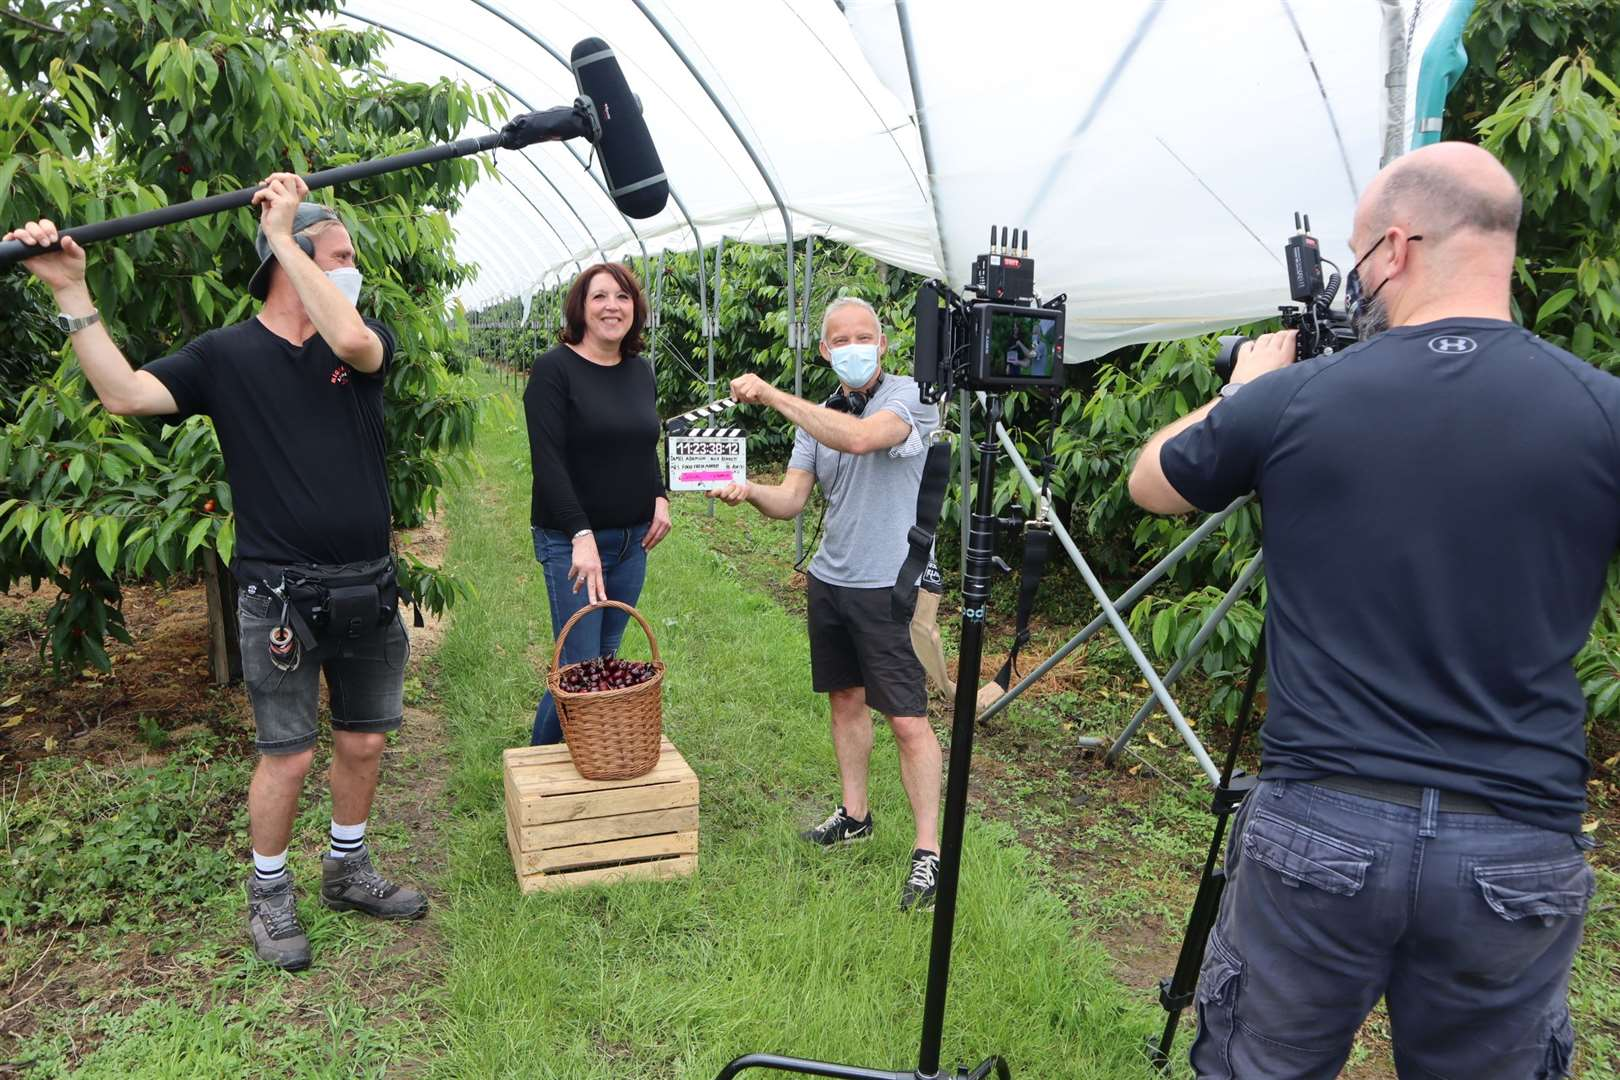 Sarah Neaves, Cherry Farmer from Sittingbourne at Little Sharsted Farm with the ITV film crew for M&S commercial with sound operator Jay Barnett, screenwriter Anton Ezer and cameraman Rich Bennett.  Photo: John Nurden